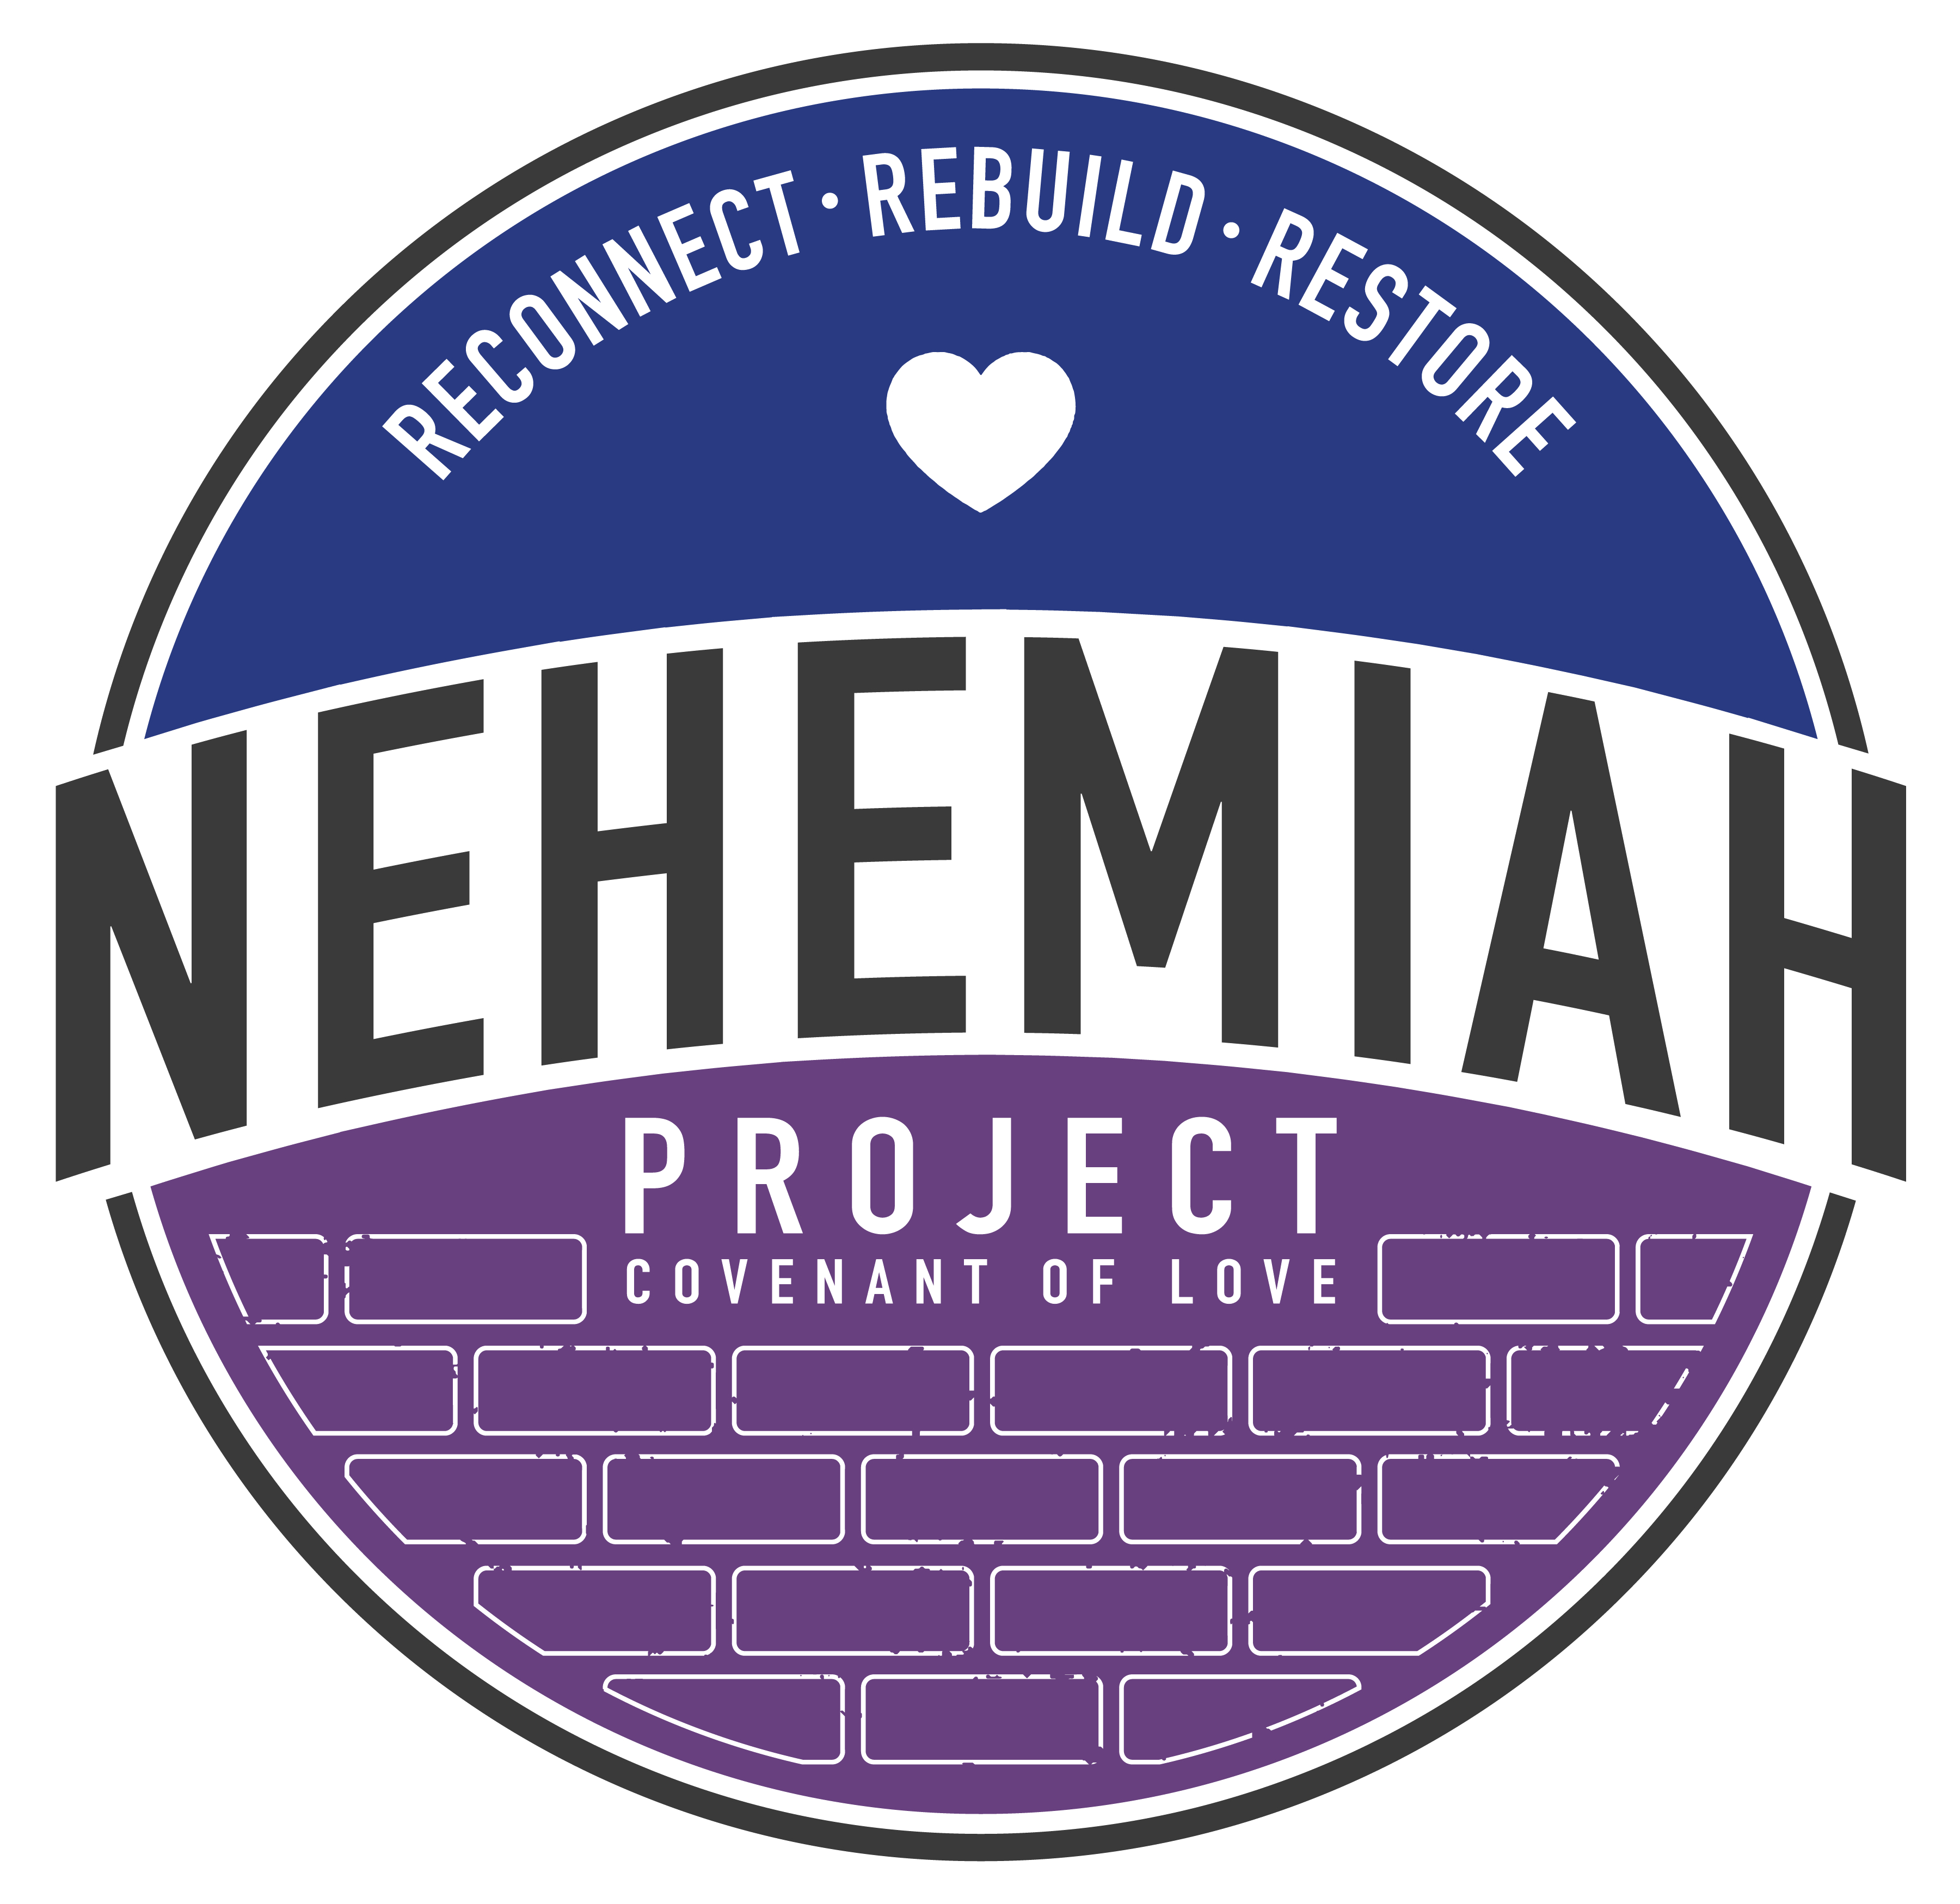 Nehemiah Project of Love